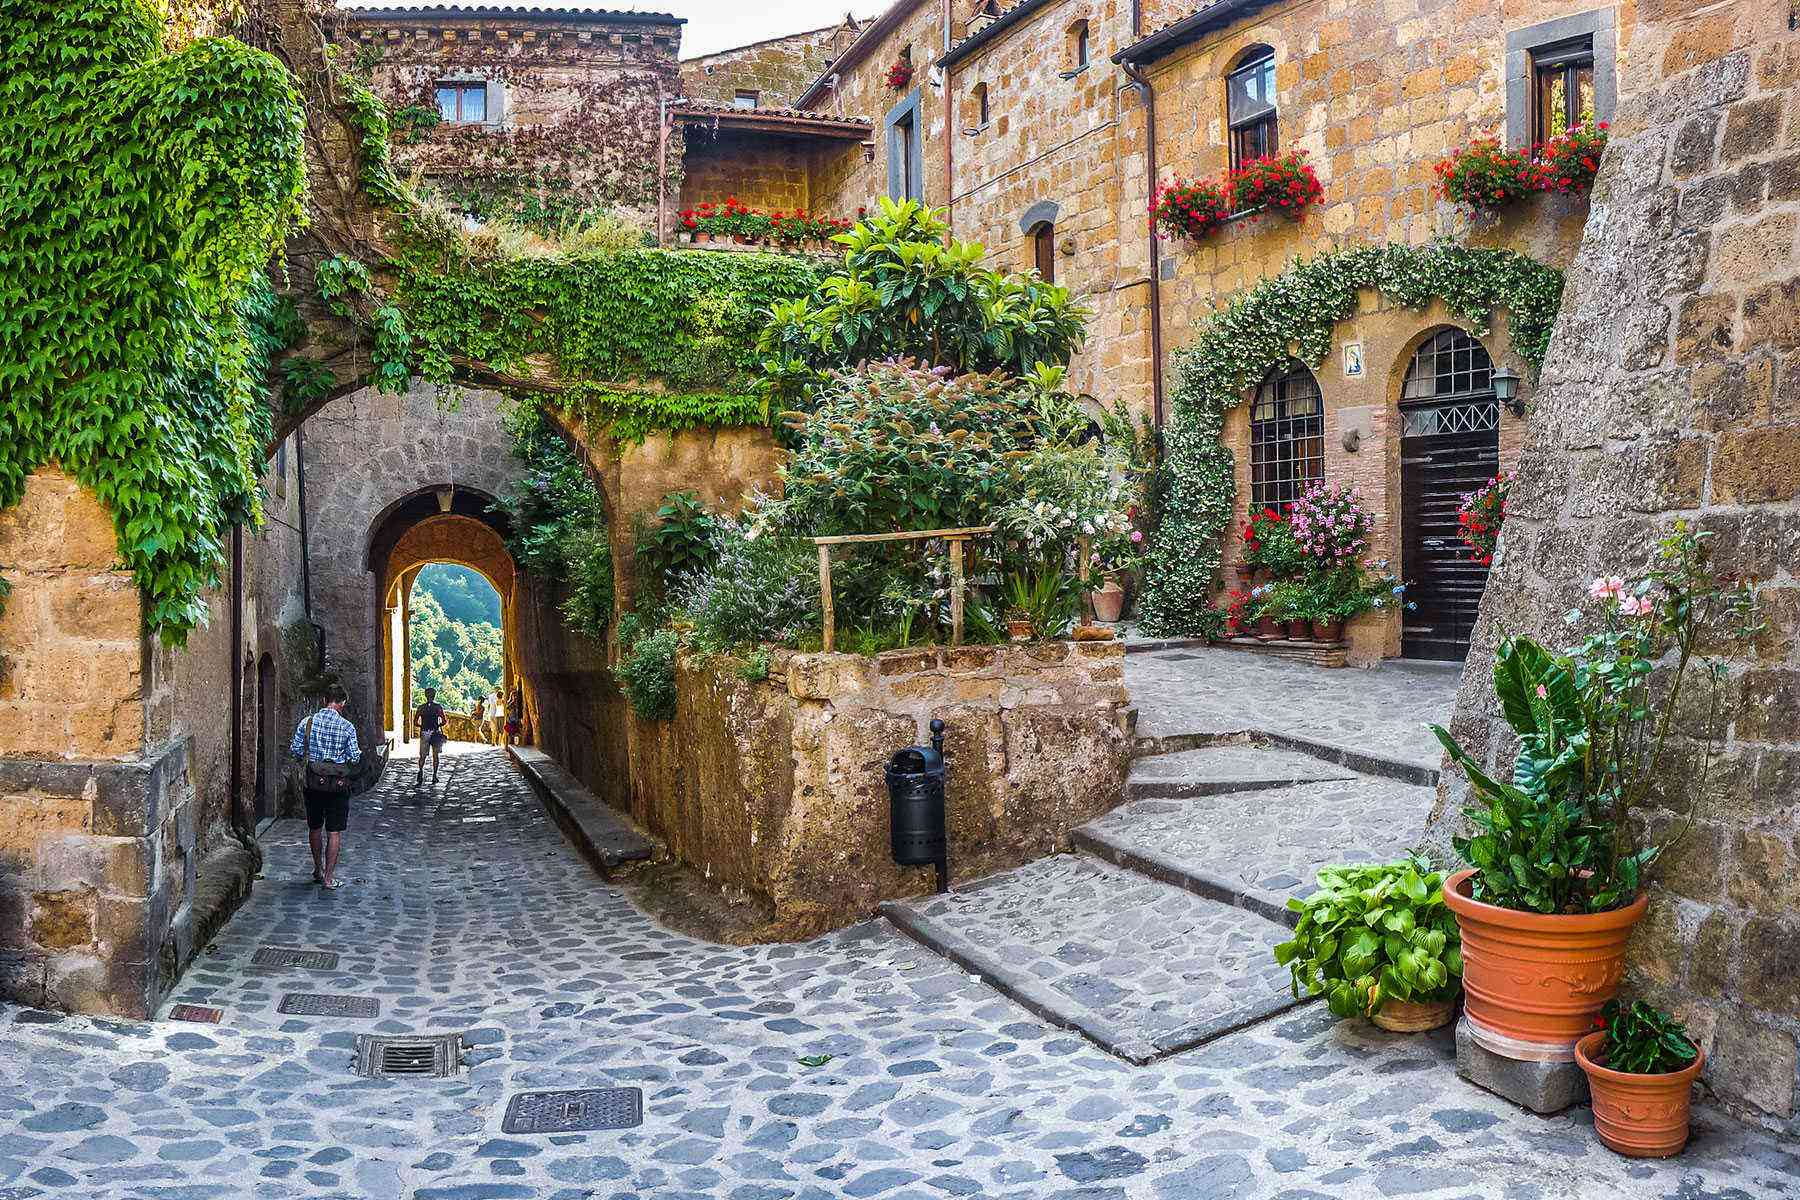 1ee36043568 24 Stunning Medieval Mountaintop Villages in Italy – Fodors Travel Guide